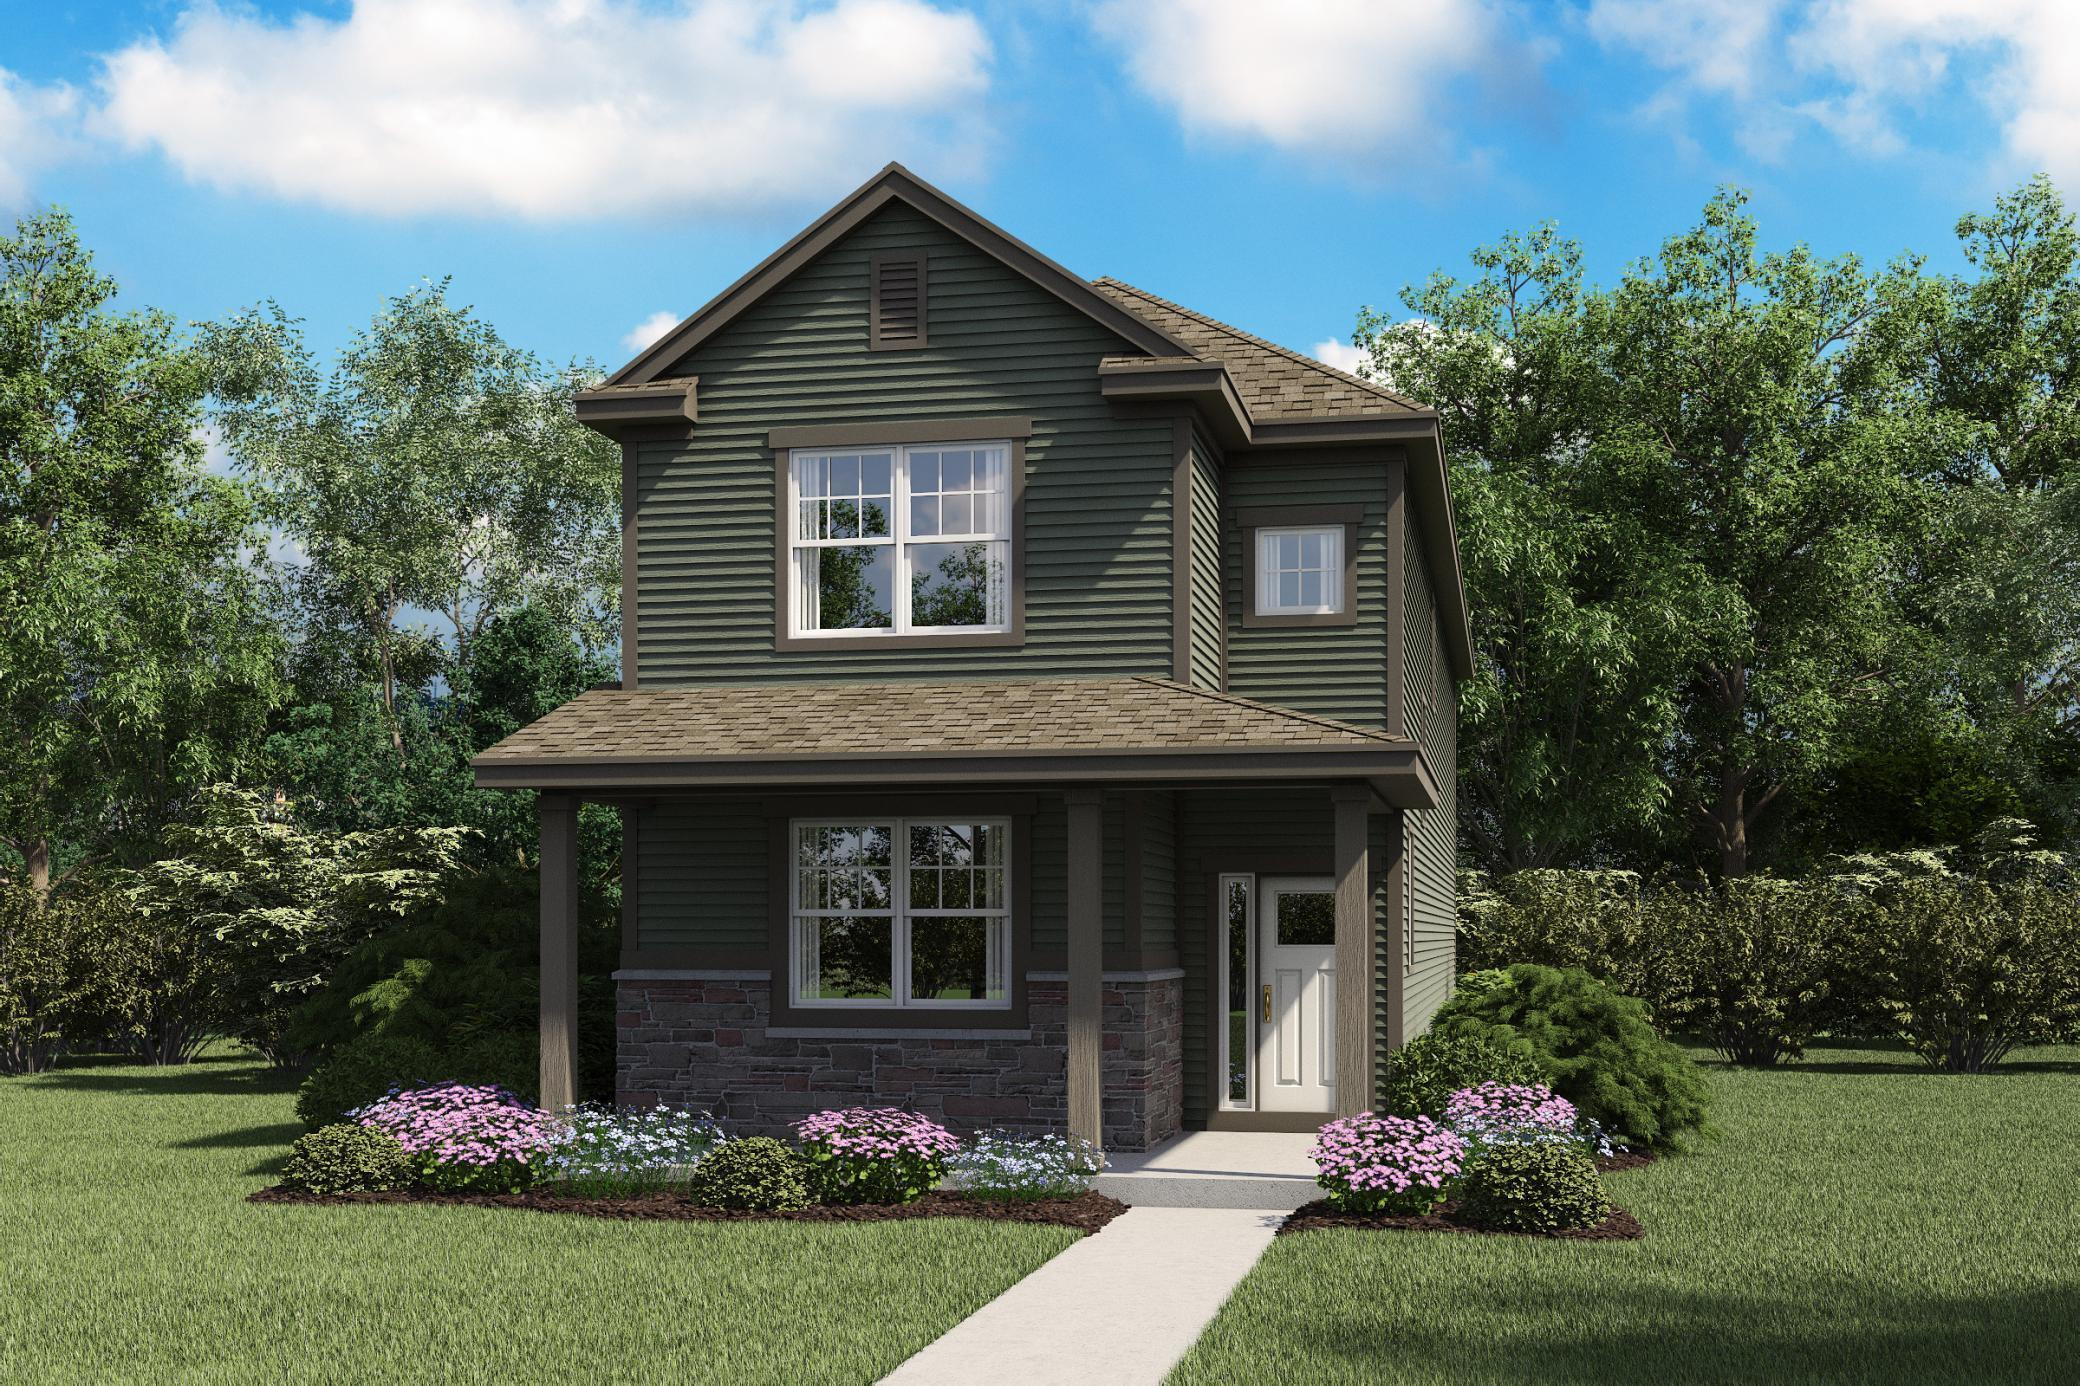 Front elevation rendering. Home features spacious covered front porch with stone accents.